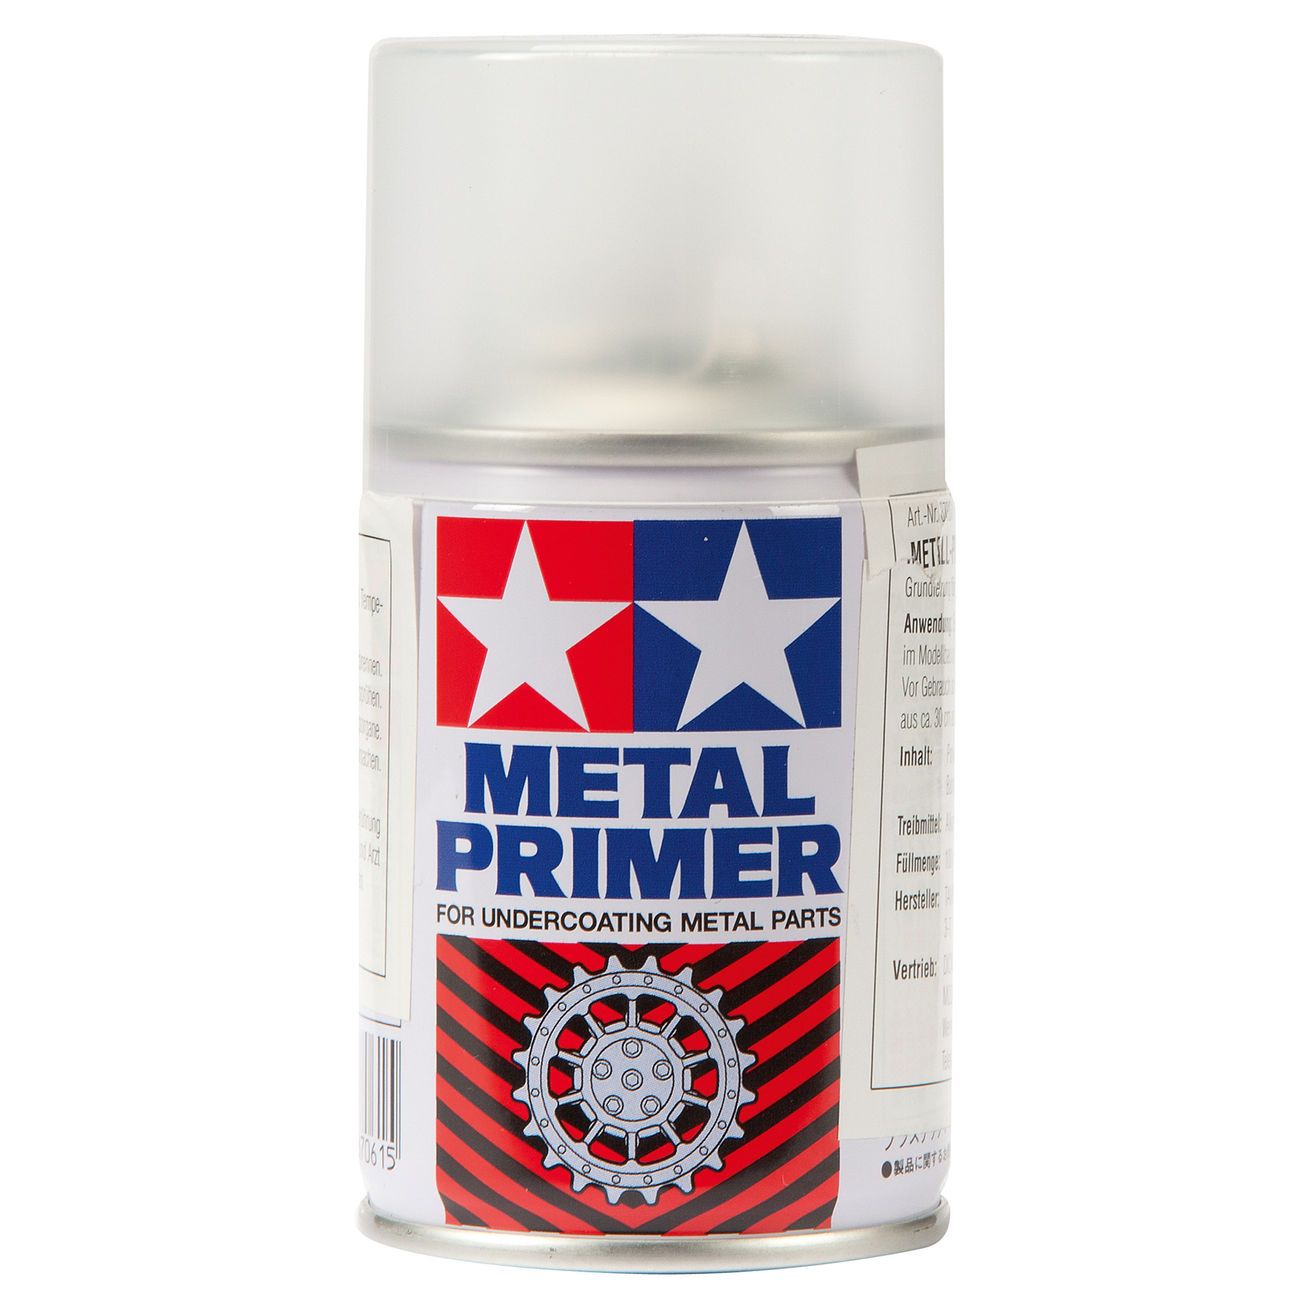 Tamiya Metal Primer farblos Grundierspray 100ml 87061 0